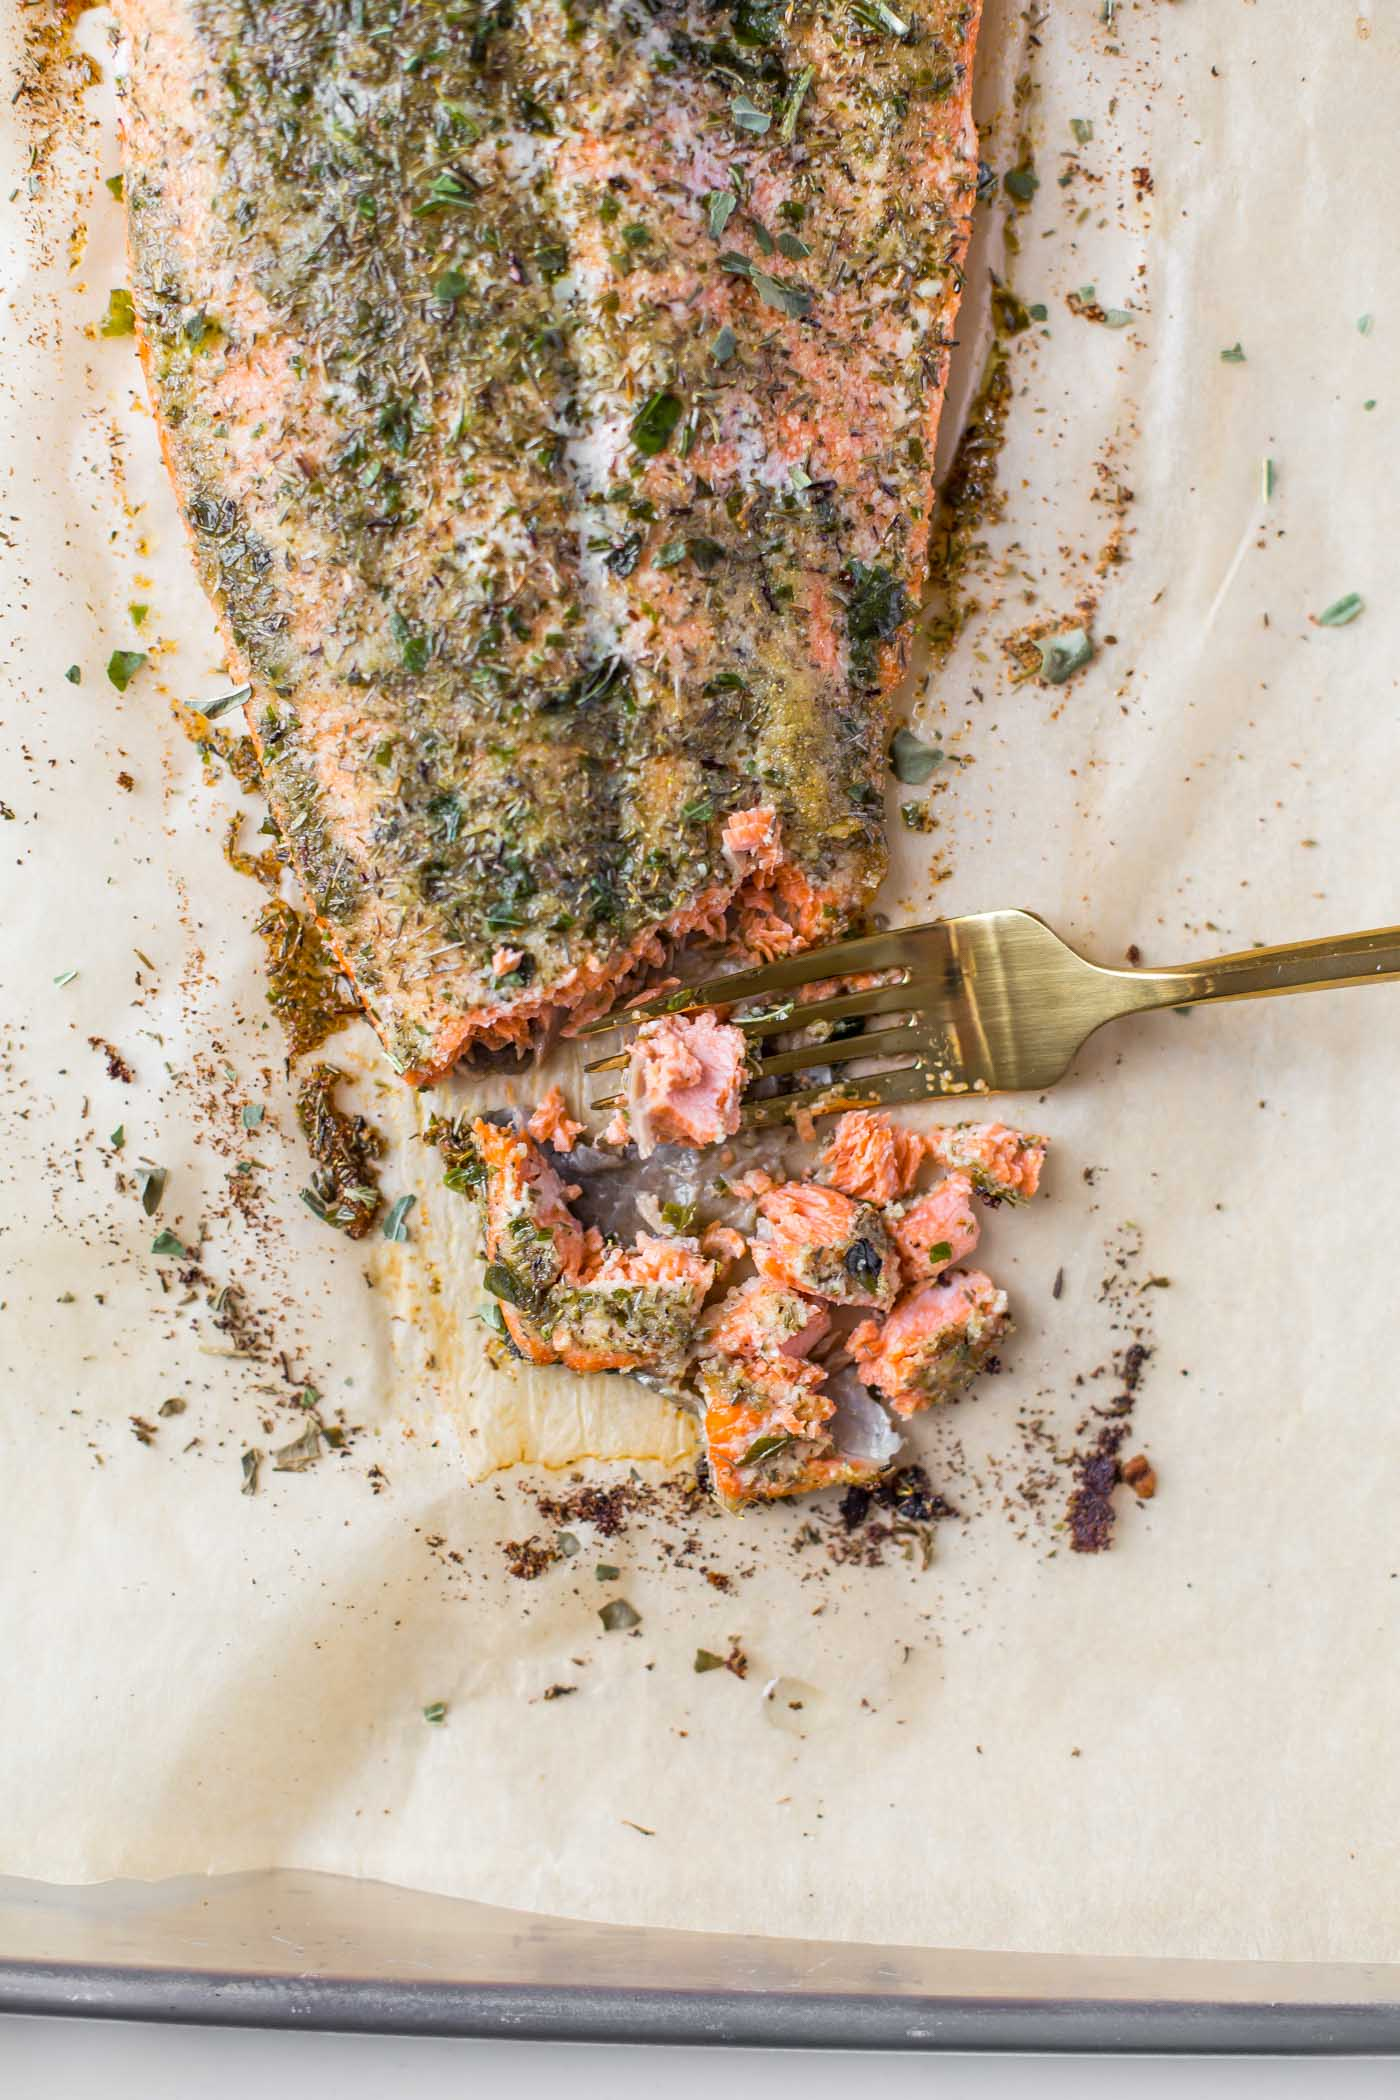 baked salmon fillet with gold fork pulling apart salmon